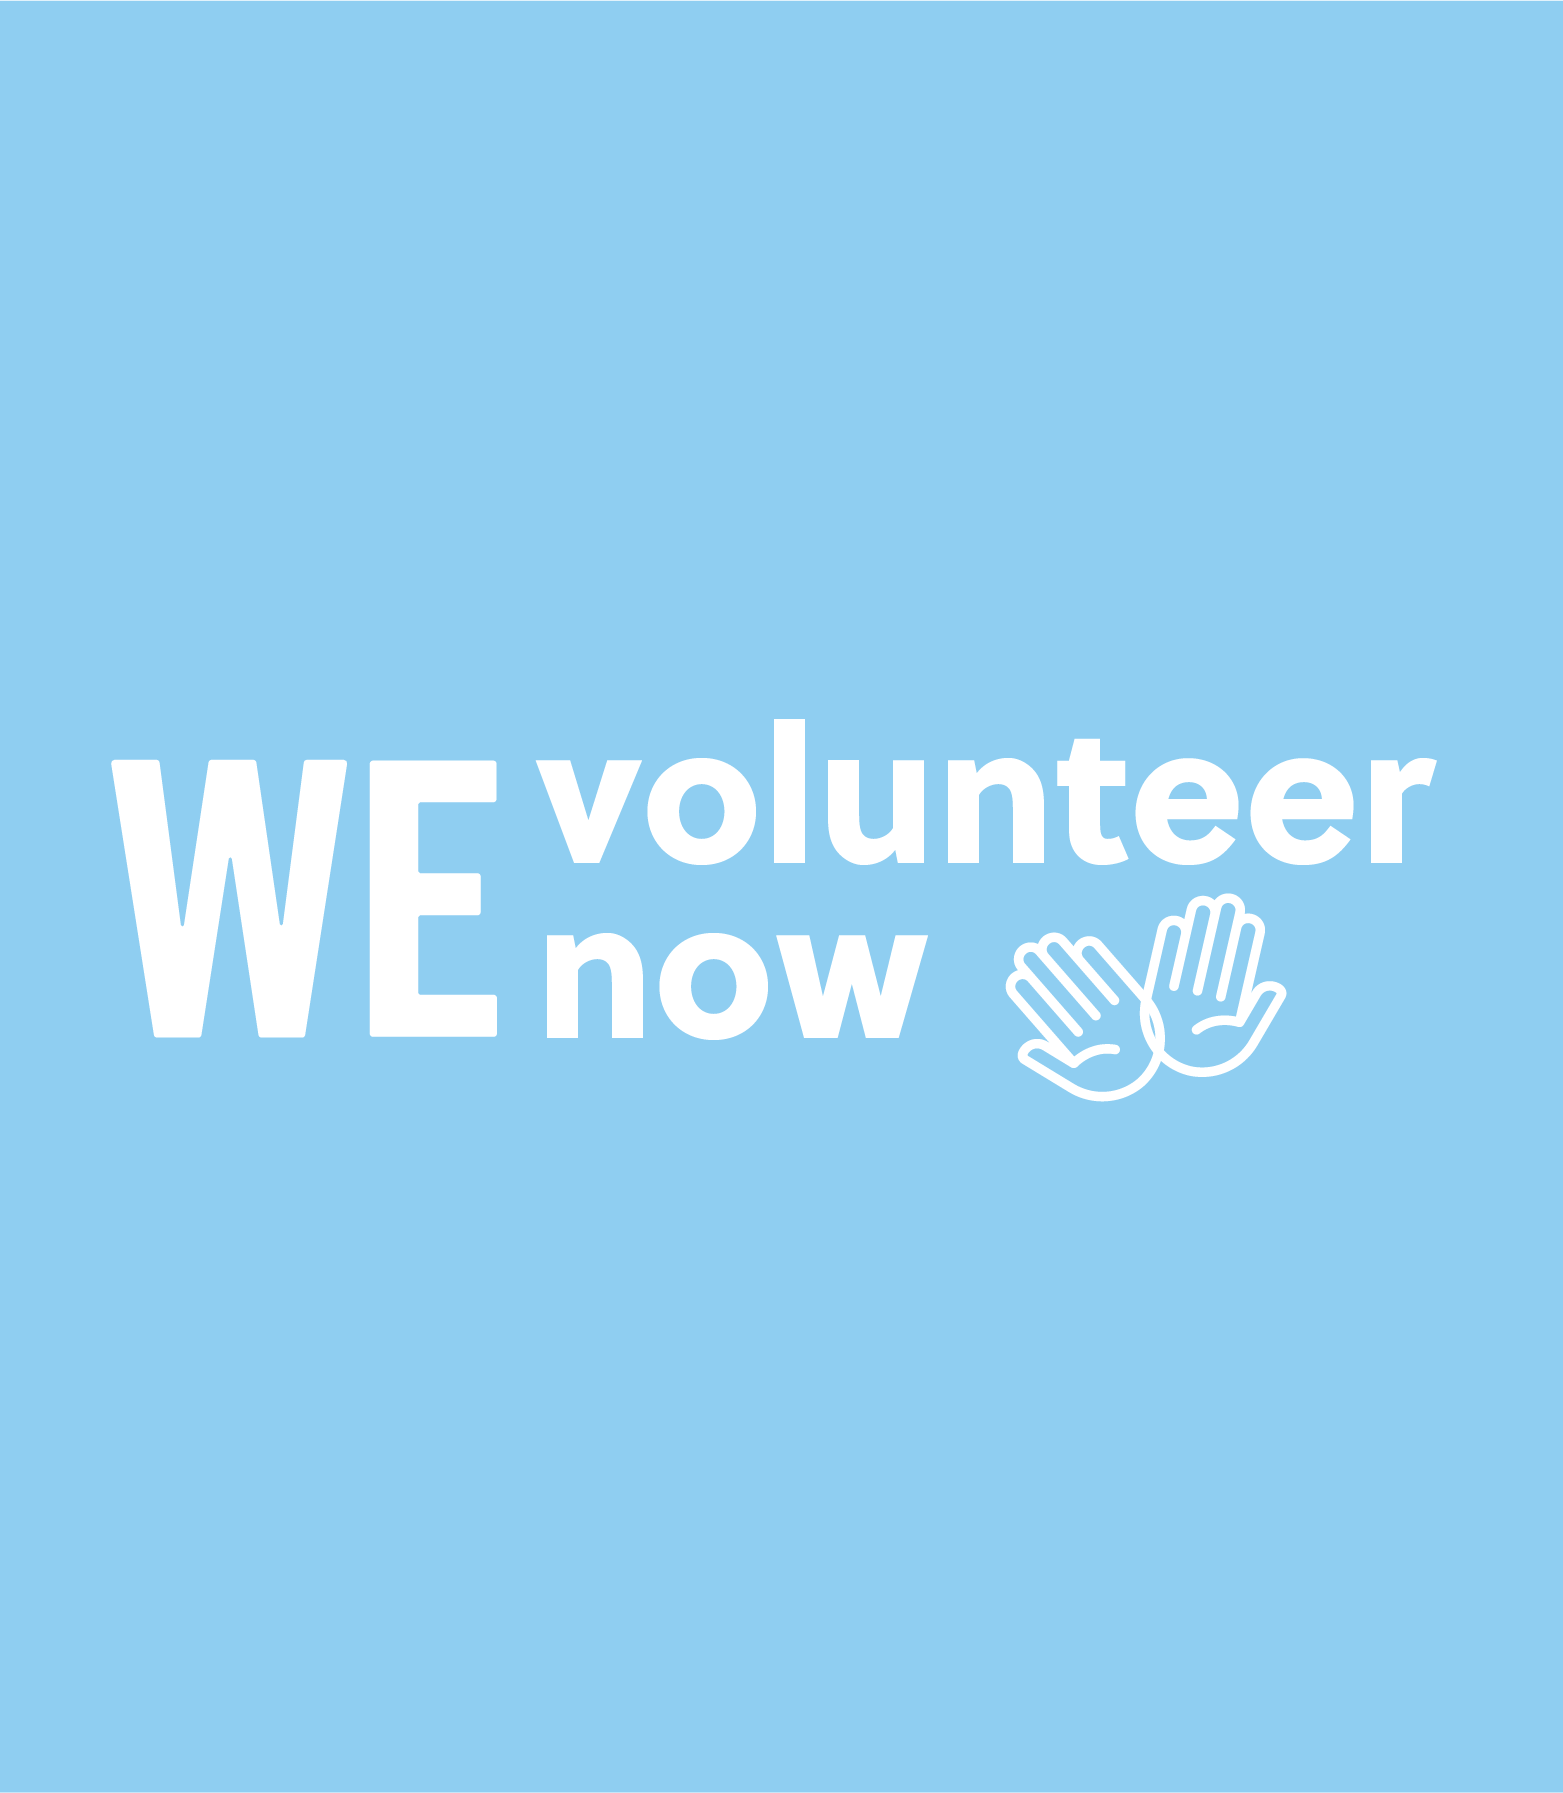 WE Volunteer now logo with hands on blue background